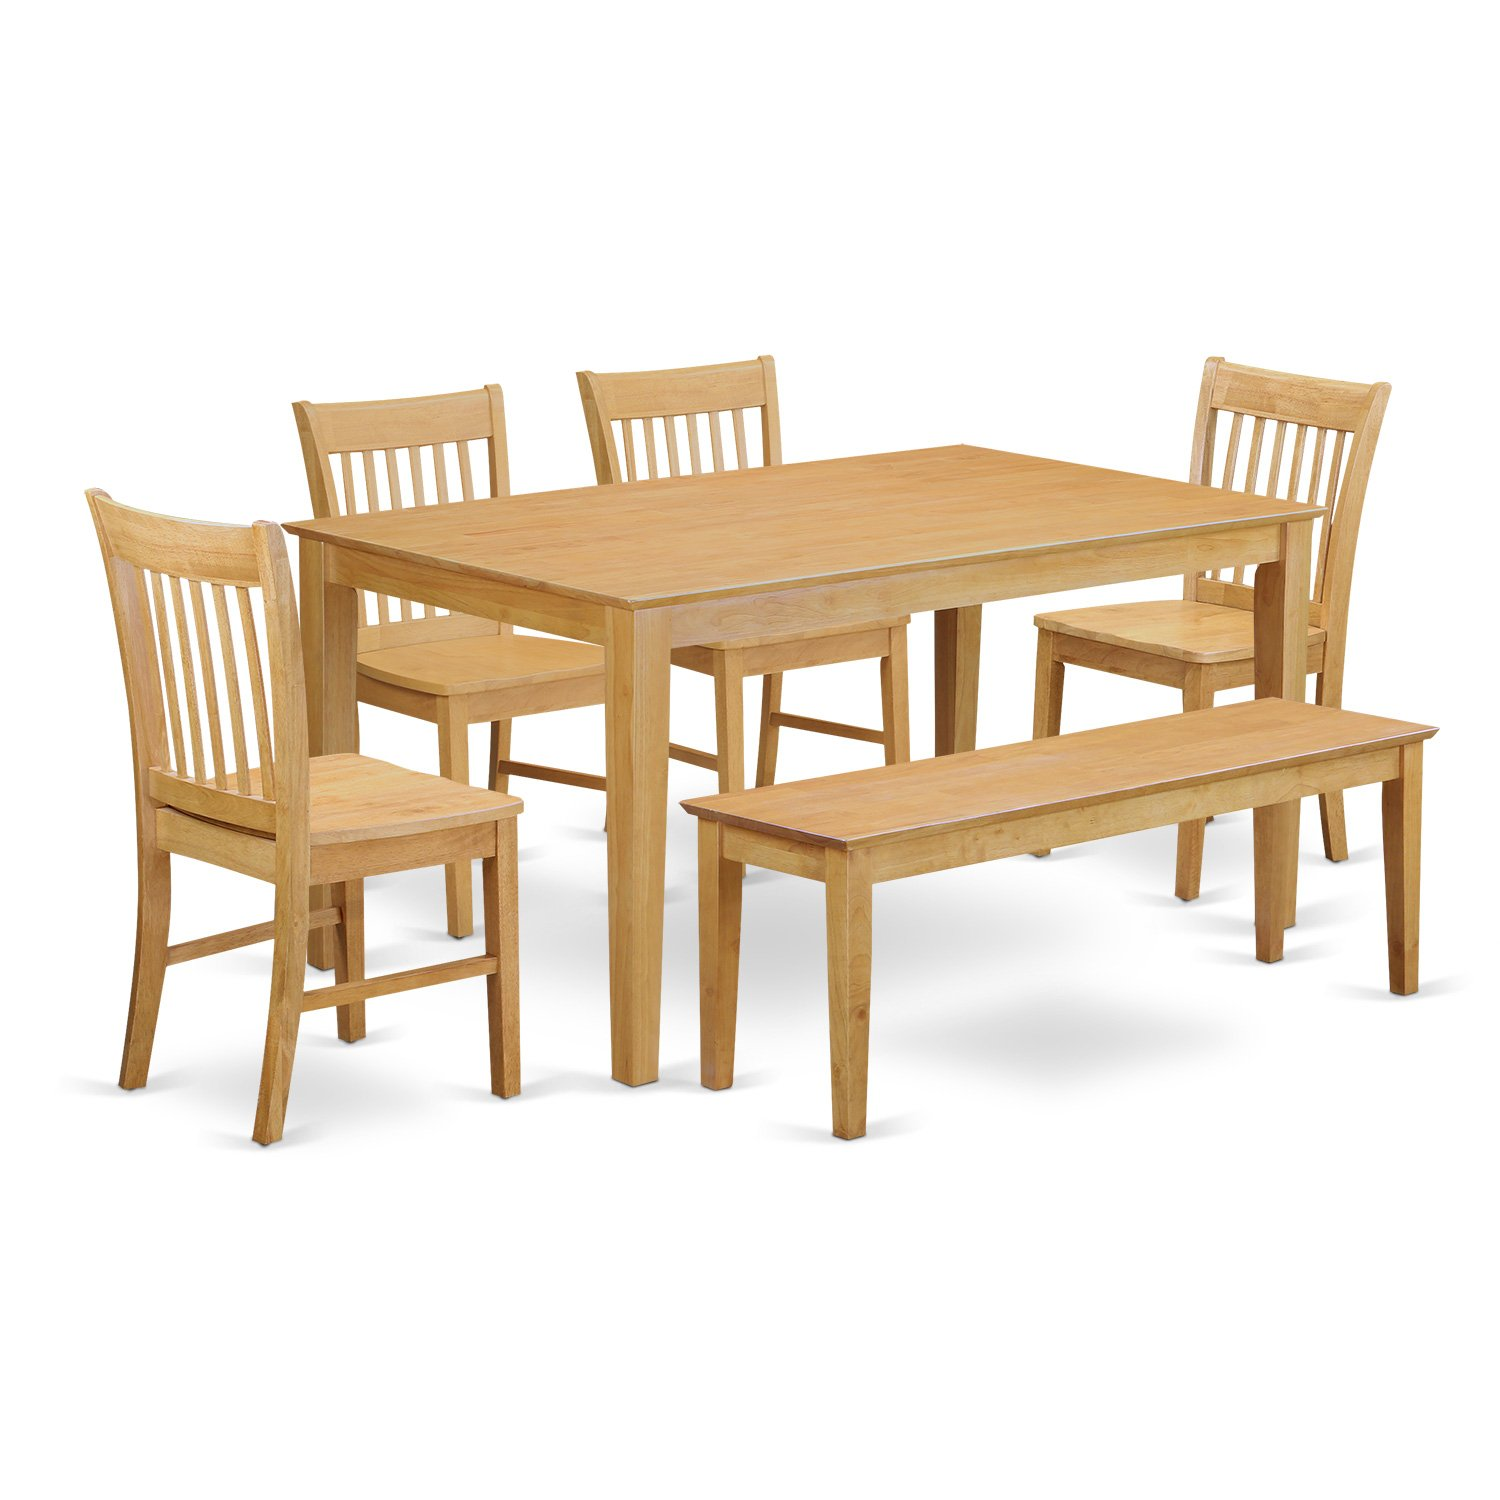 Amazon.com East West Furniture CANO6-OAK-W 6-Piece Dining Table Set Kitchen u0026 Dining  sc 1 st  Amazon.com & Amazon.com: East West Furniture CANO6-OAK-W 6-Piece Dining Table Set ...